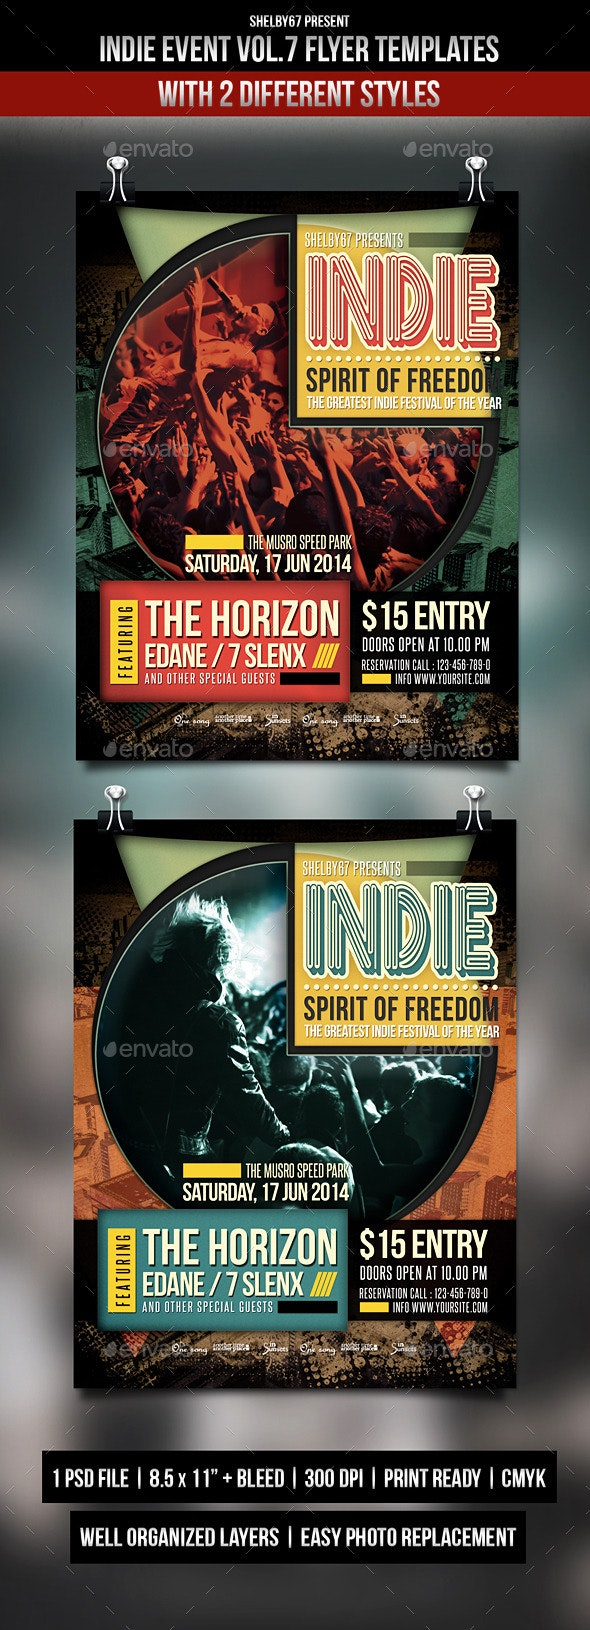 Indie Event Flyer Templates Vol.7 - Events Flyers